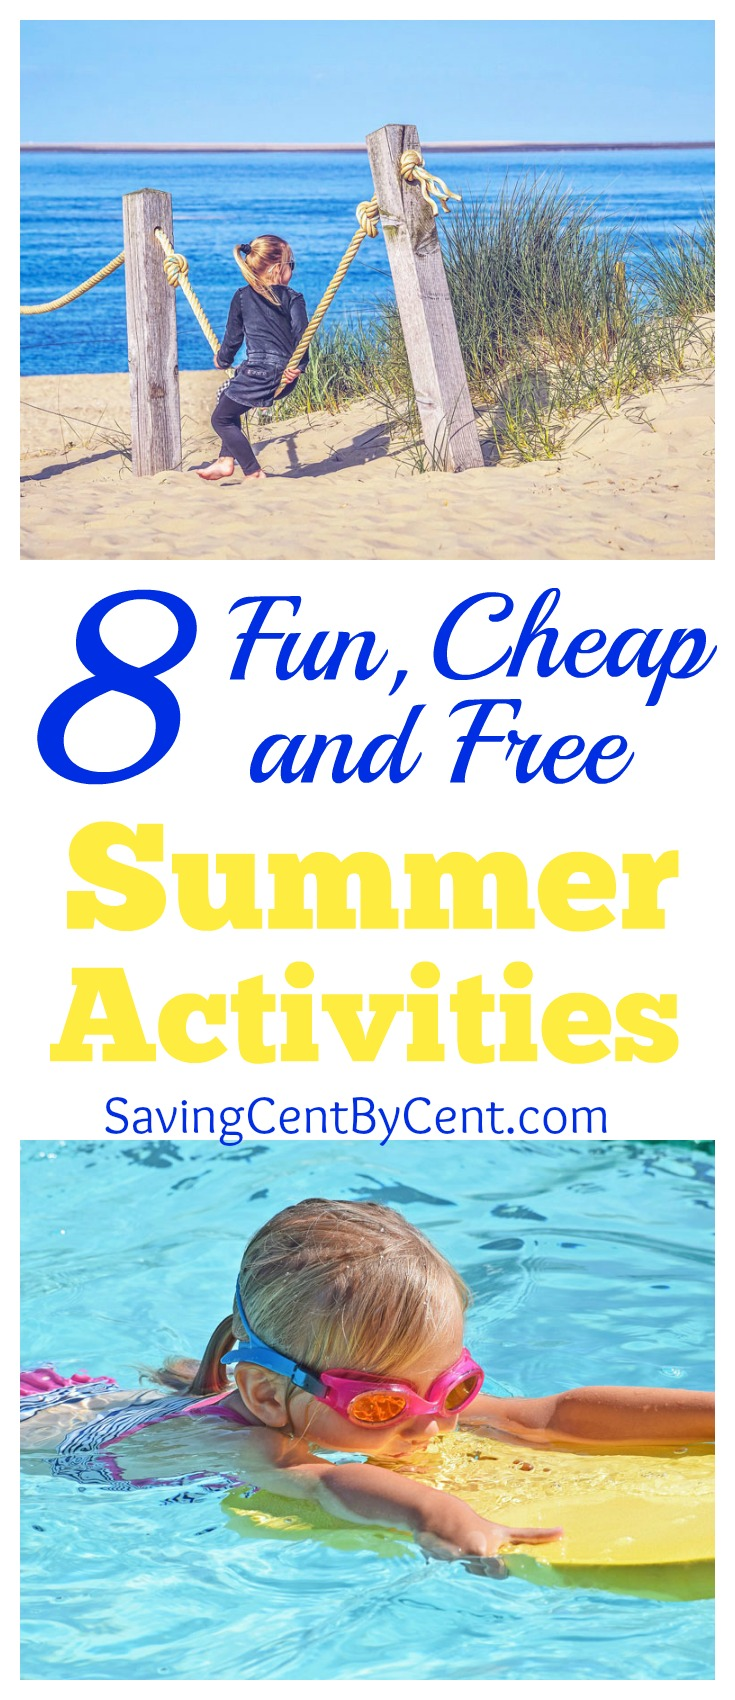 Fun, Cheap and Free Summer Activities